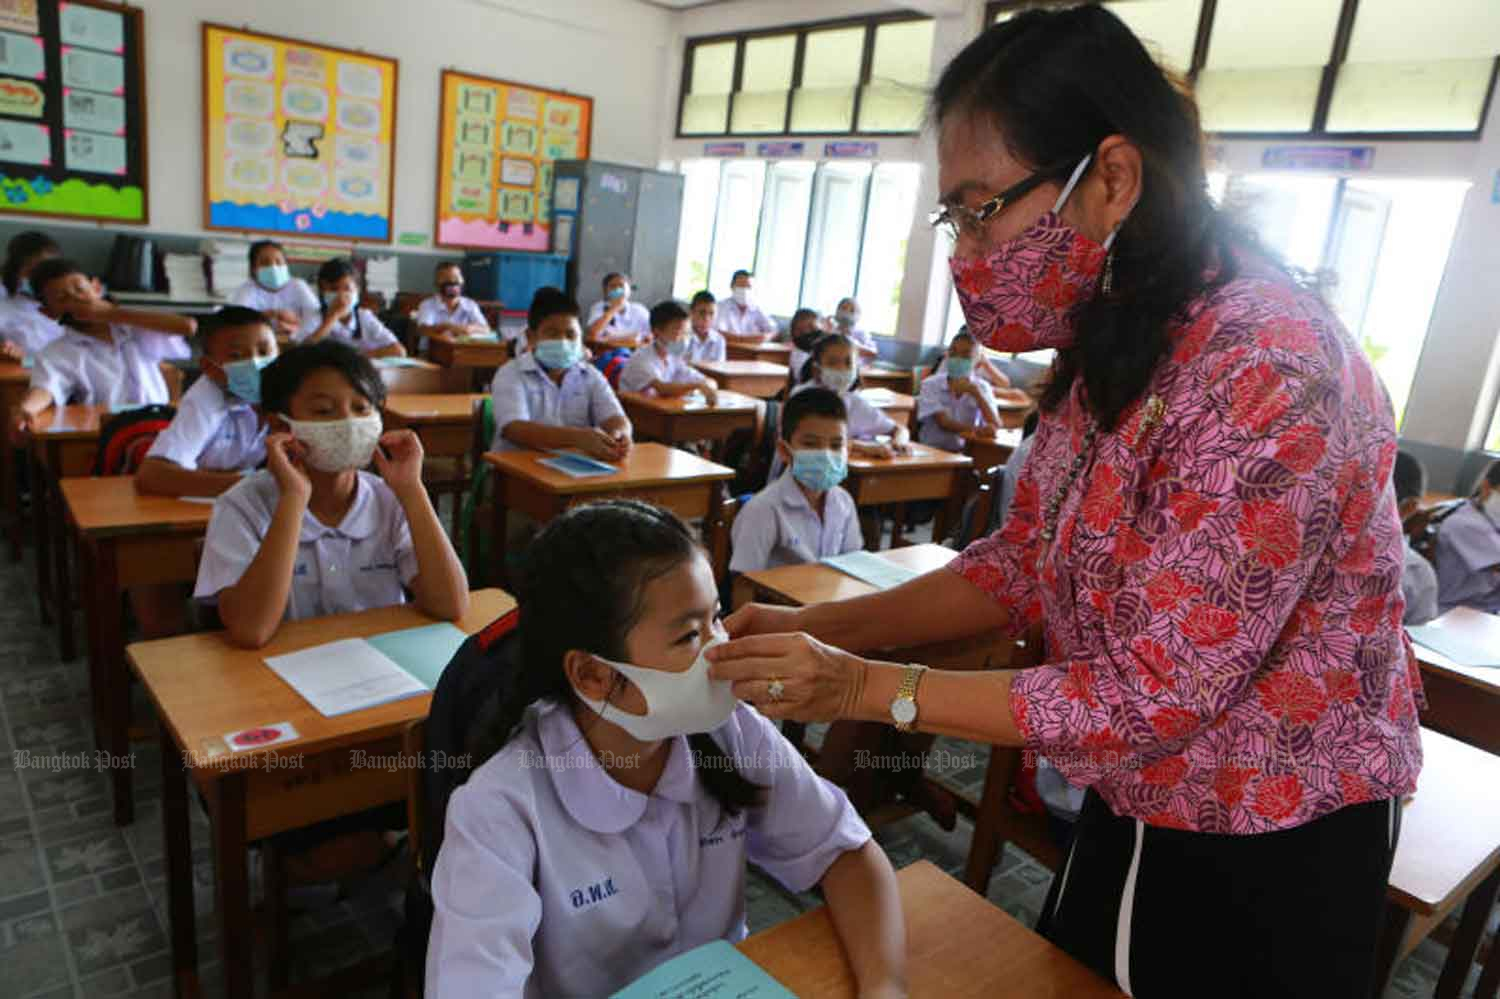 Students are advised on how to wear face masks properly when full-scale school teaching resumes at Intarumphun School in Samut Prakan province on Thursday. Meanwhile, the government reported three new Covid-19 cases among returnees from India and Singapore. (Photo by Somchai Poomlard)